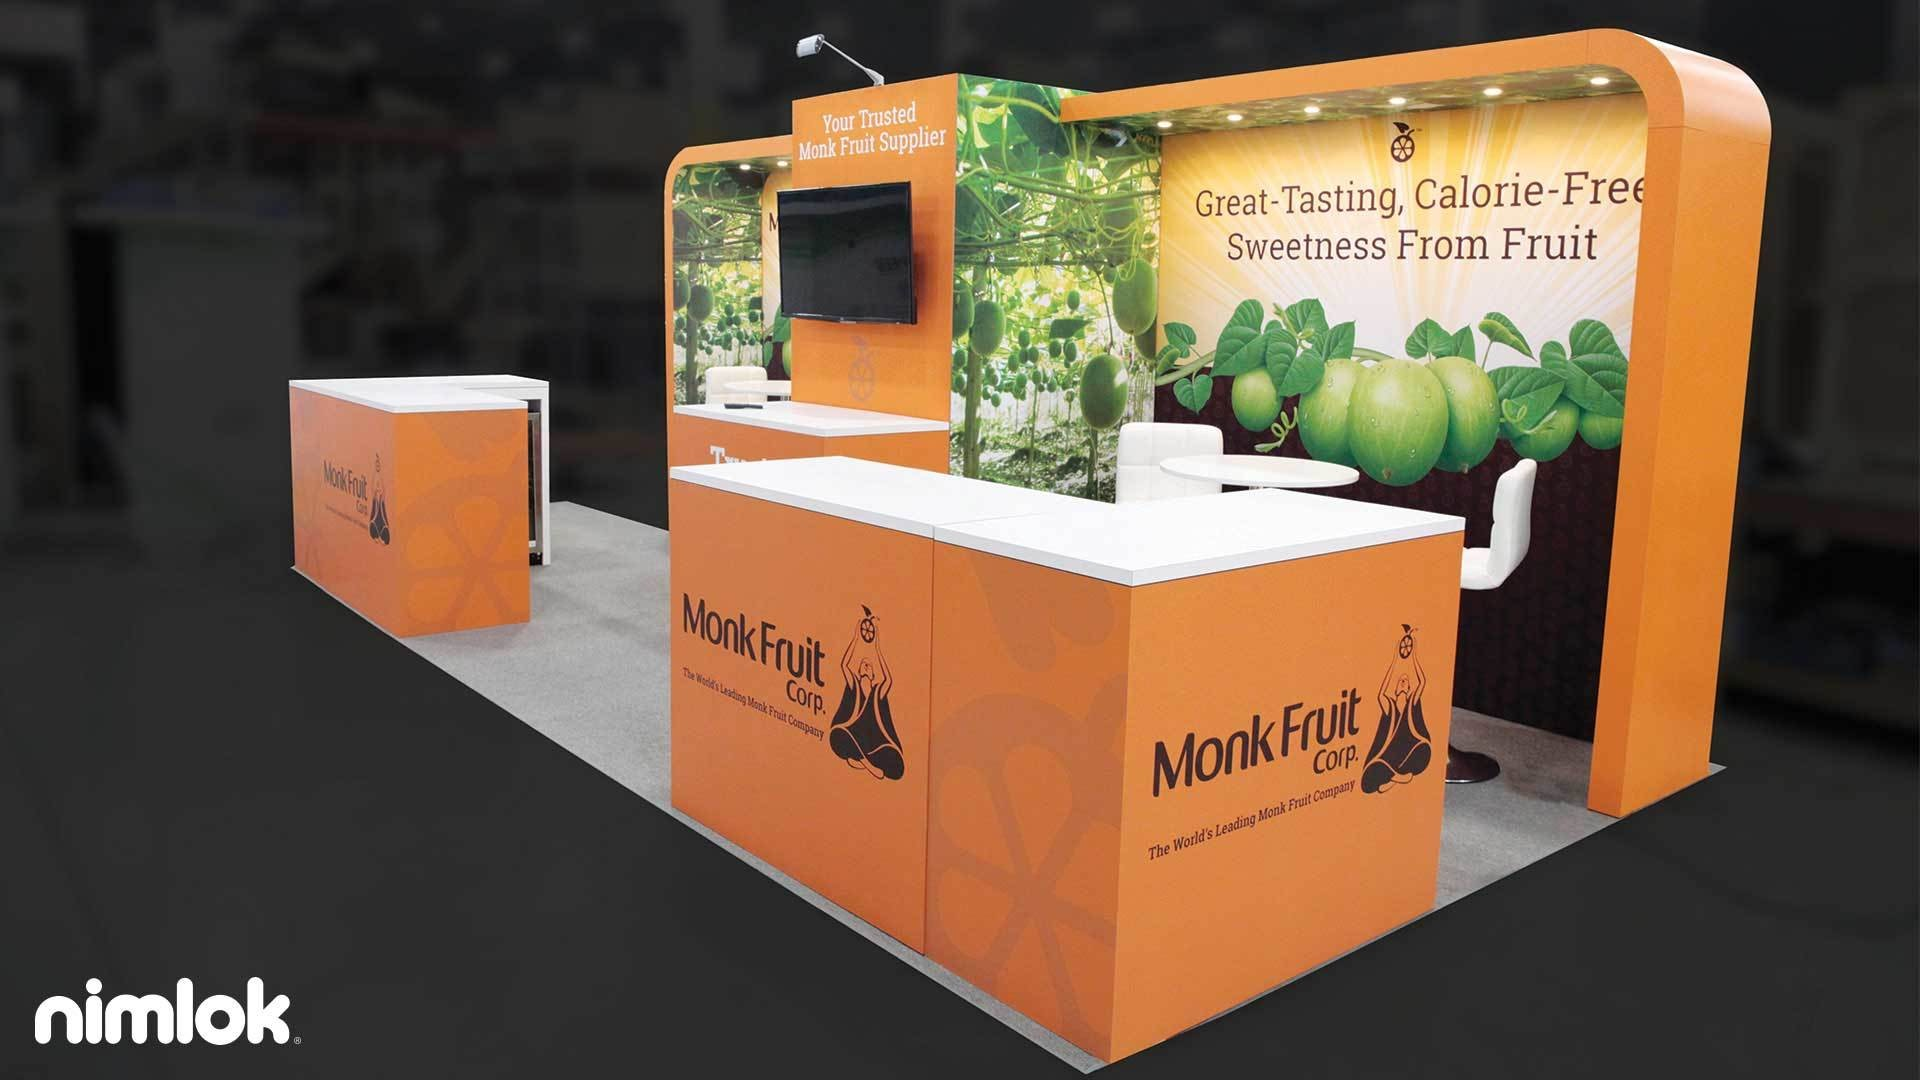 Monk Fruit Corp 20x20 Island